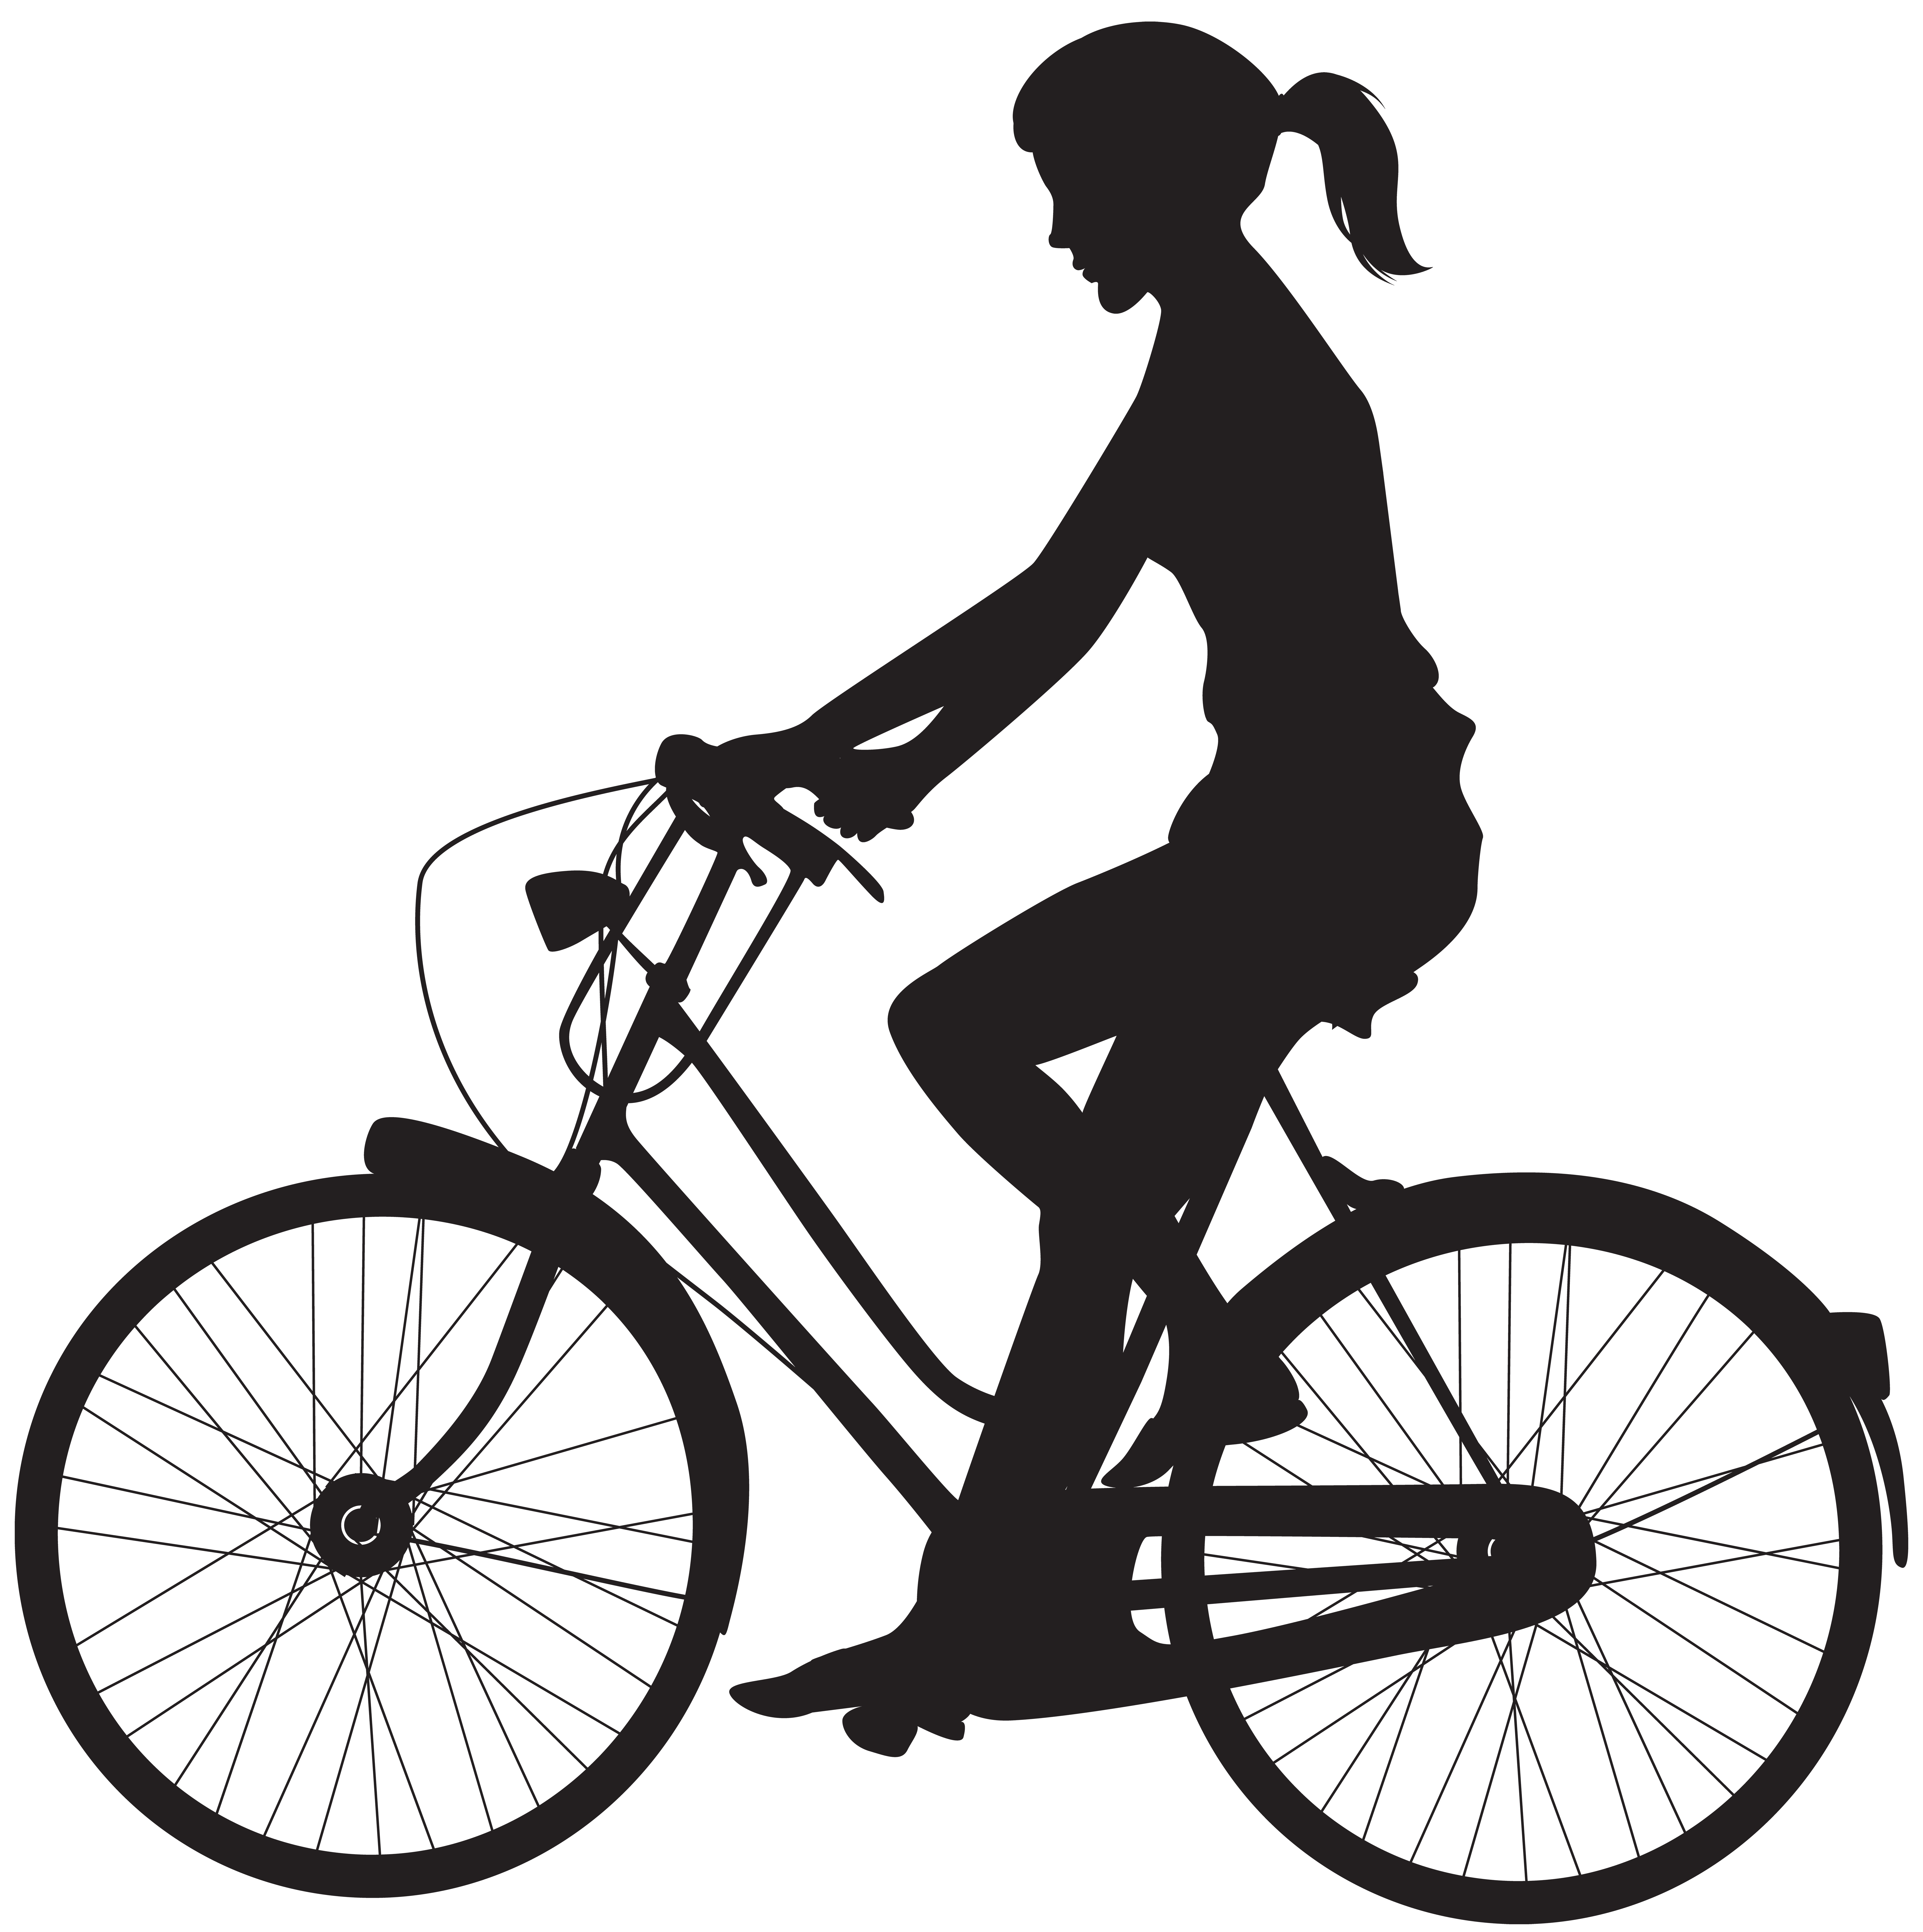 Silhouette at getdrawings com. Cycle clipart female cyclist